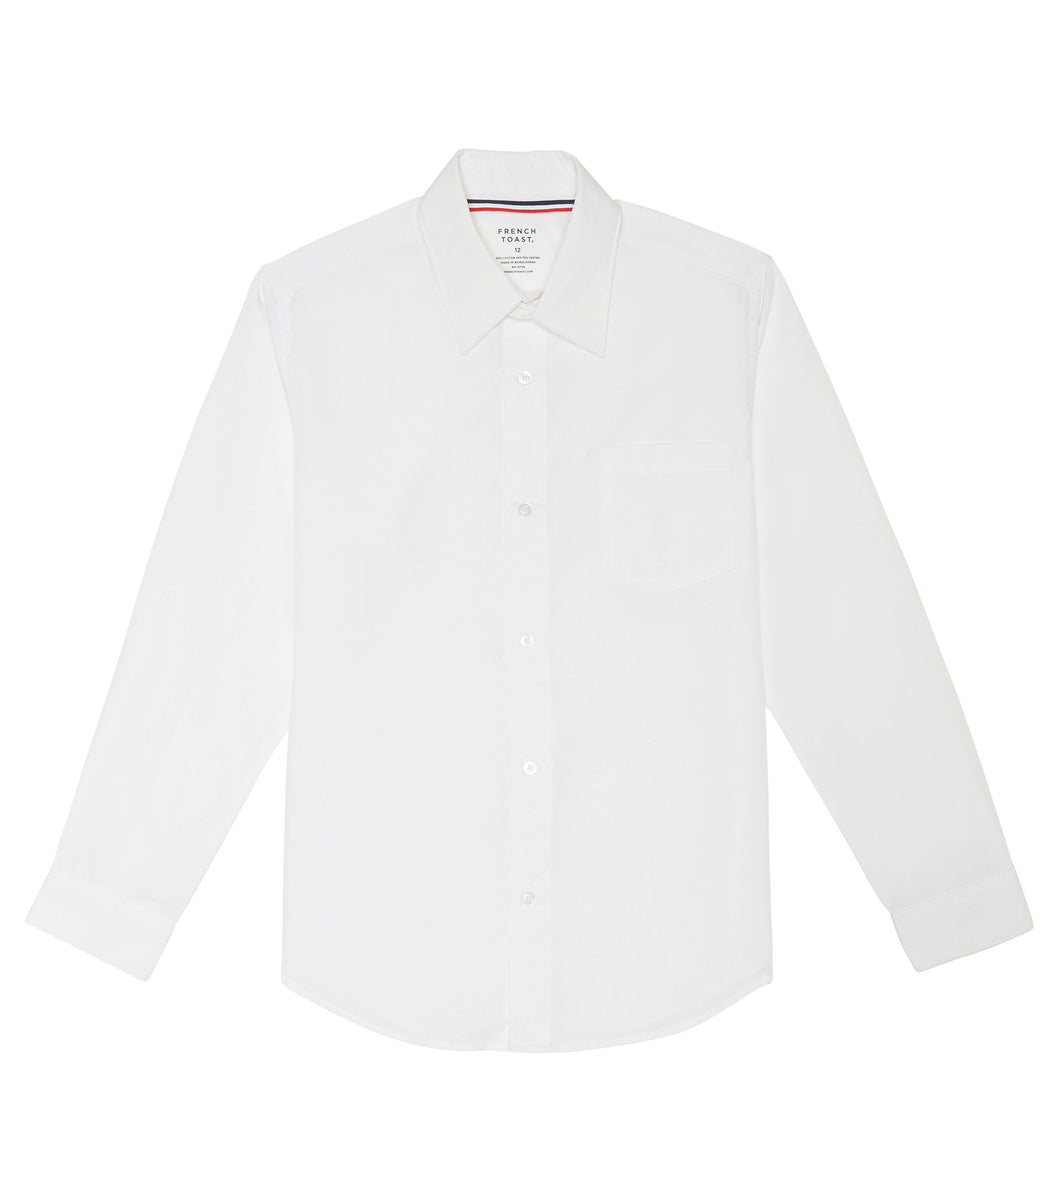 SAMPLE Boys White Long Sleeve Shirts NO logo